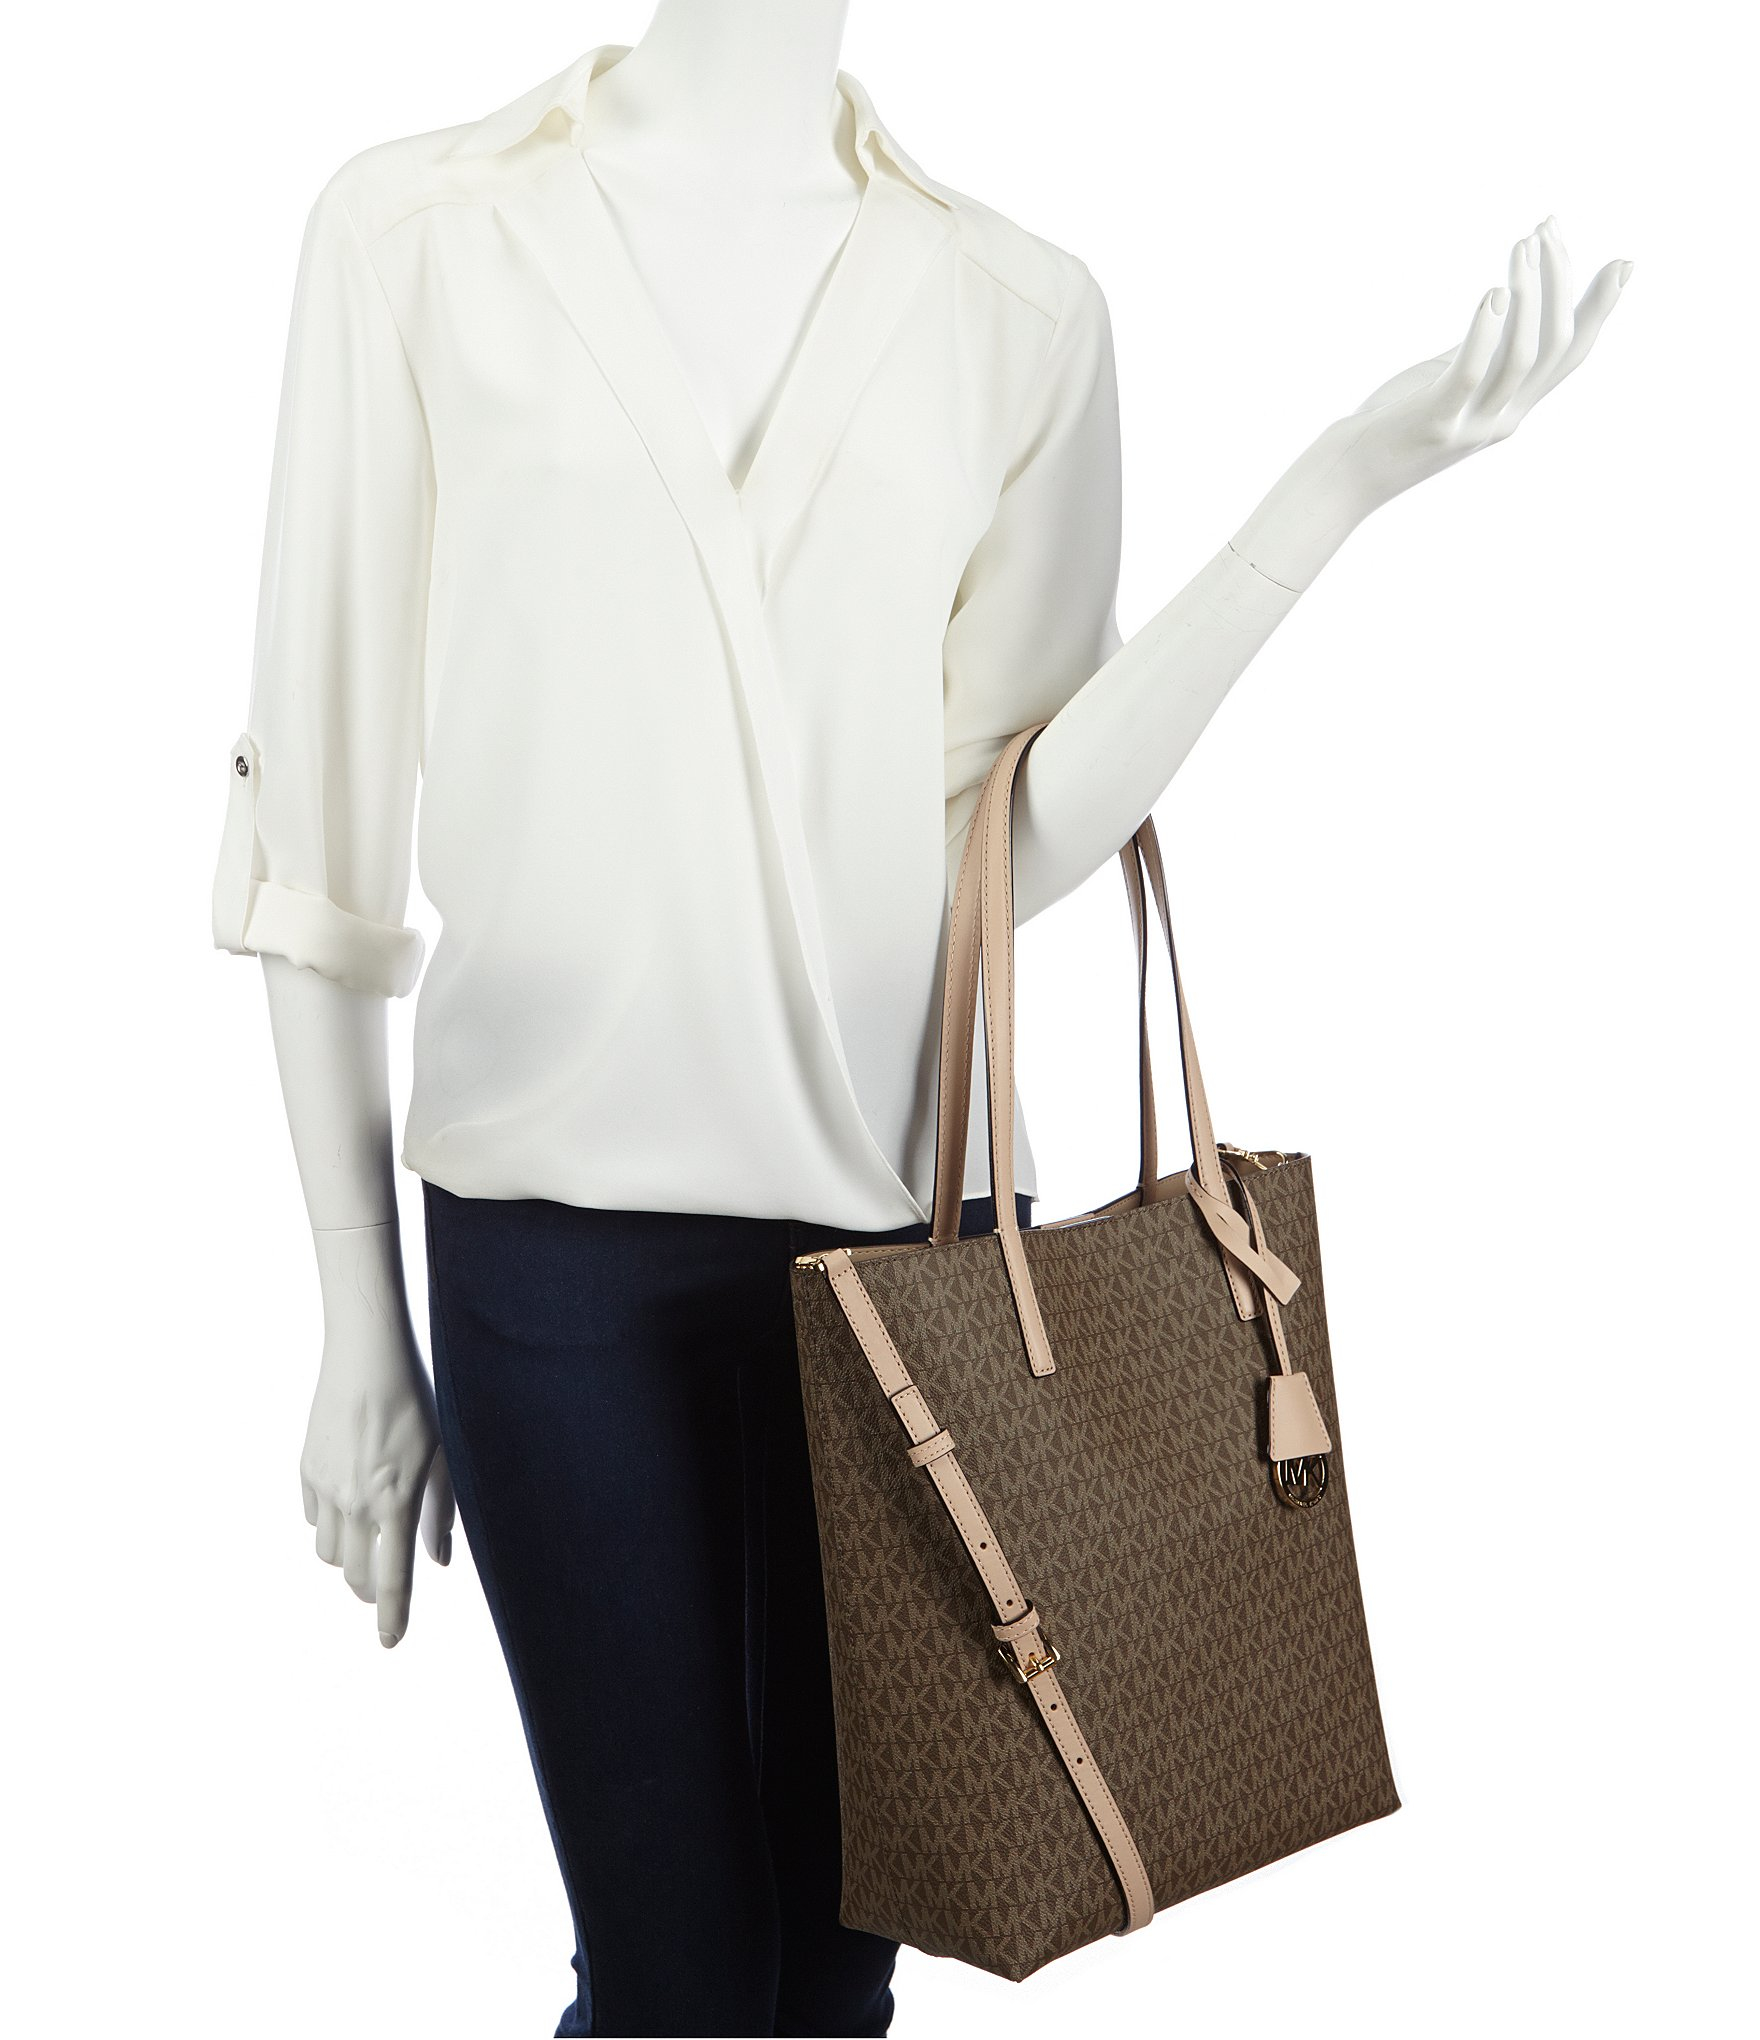 1ced9e8a8c6c29 Gallery. Previously sold at: Dillard's · Women's Michael Kors Hayley